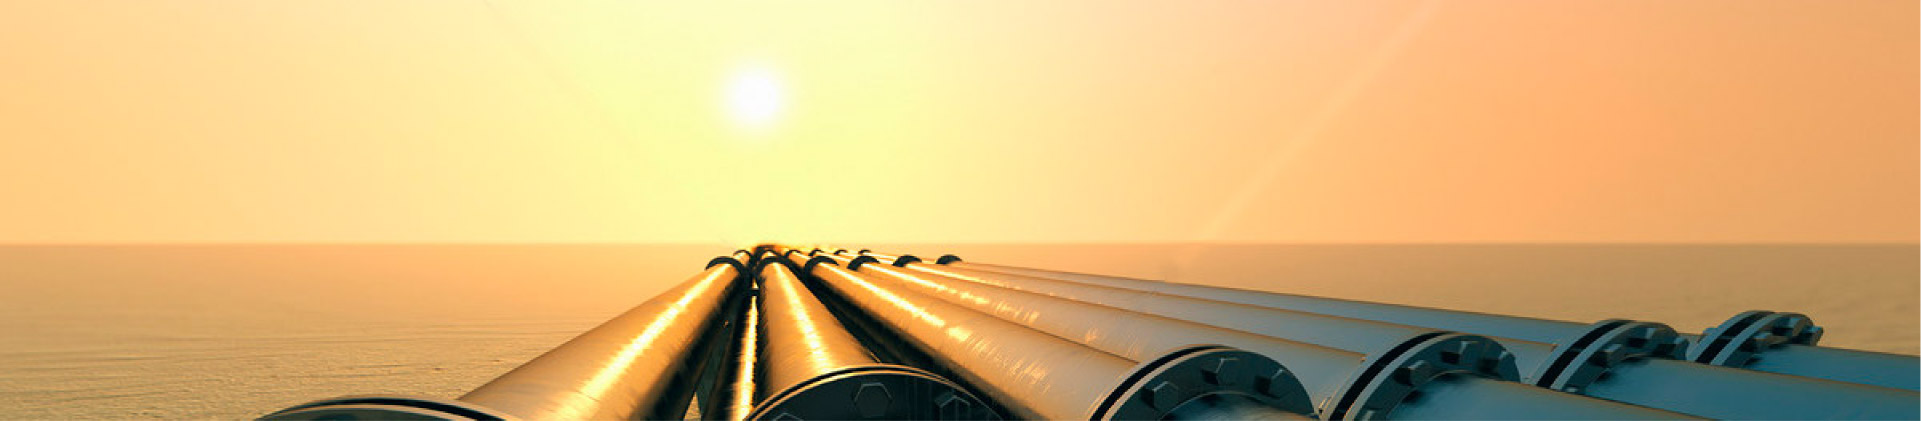 Total natural gas projects will exceed the number of oil in the future